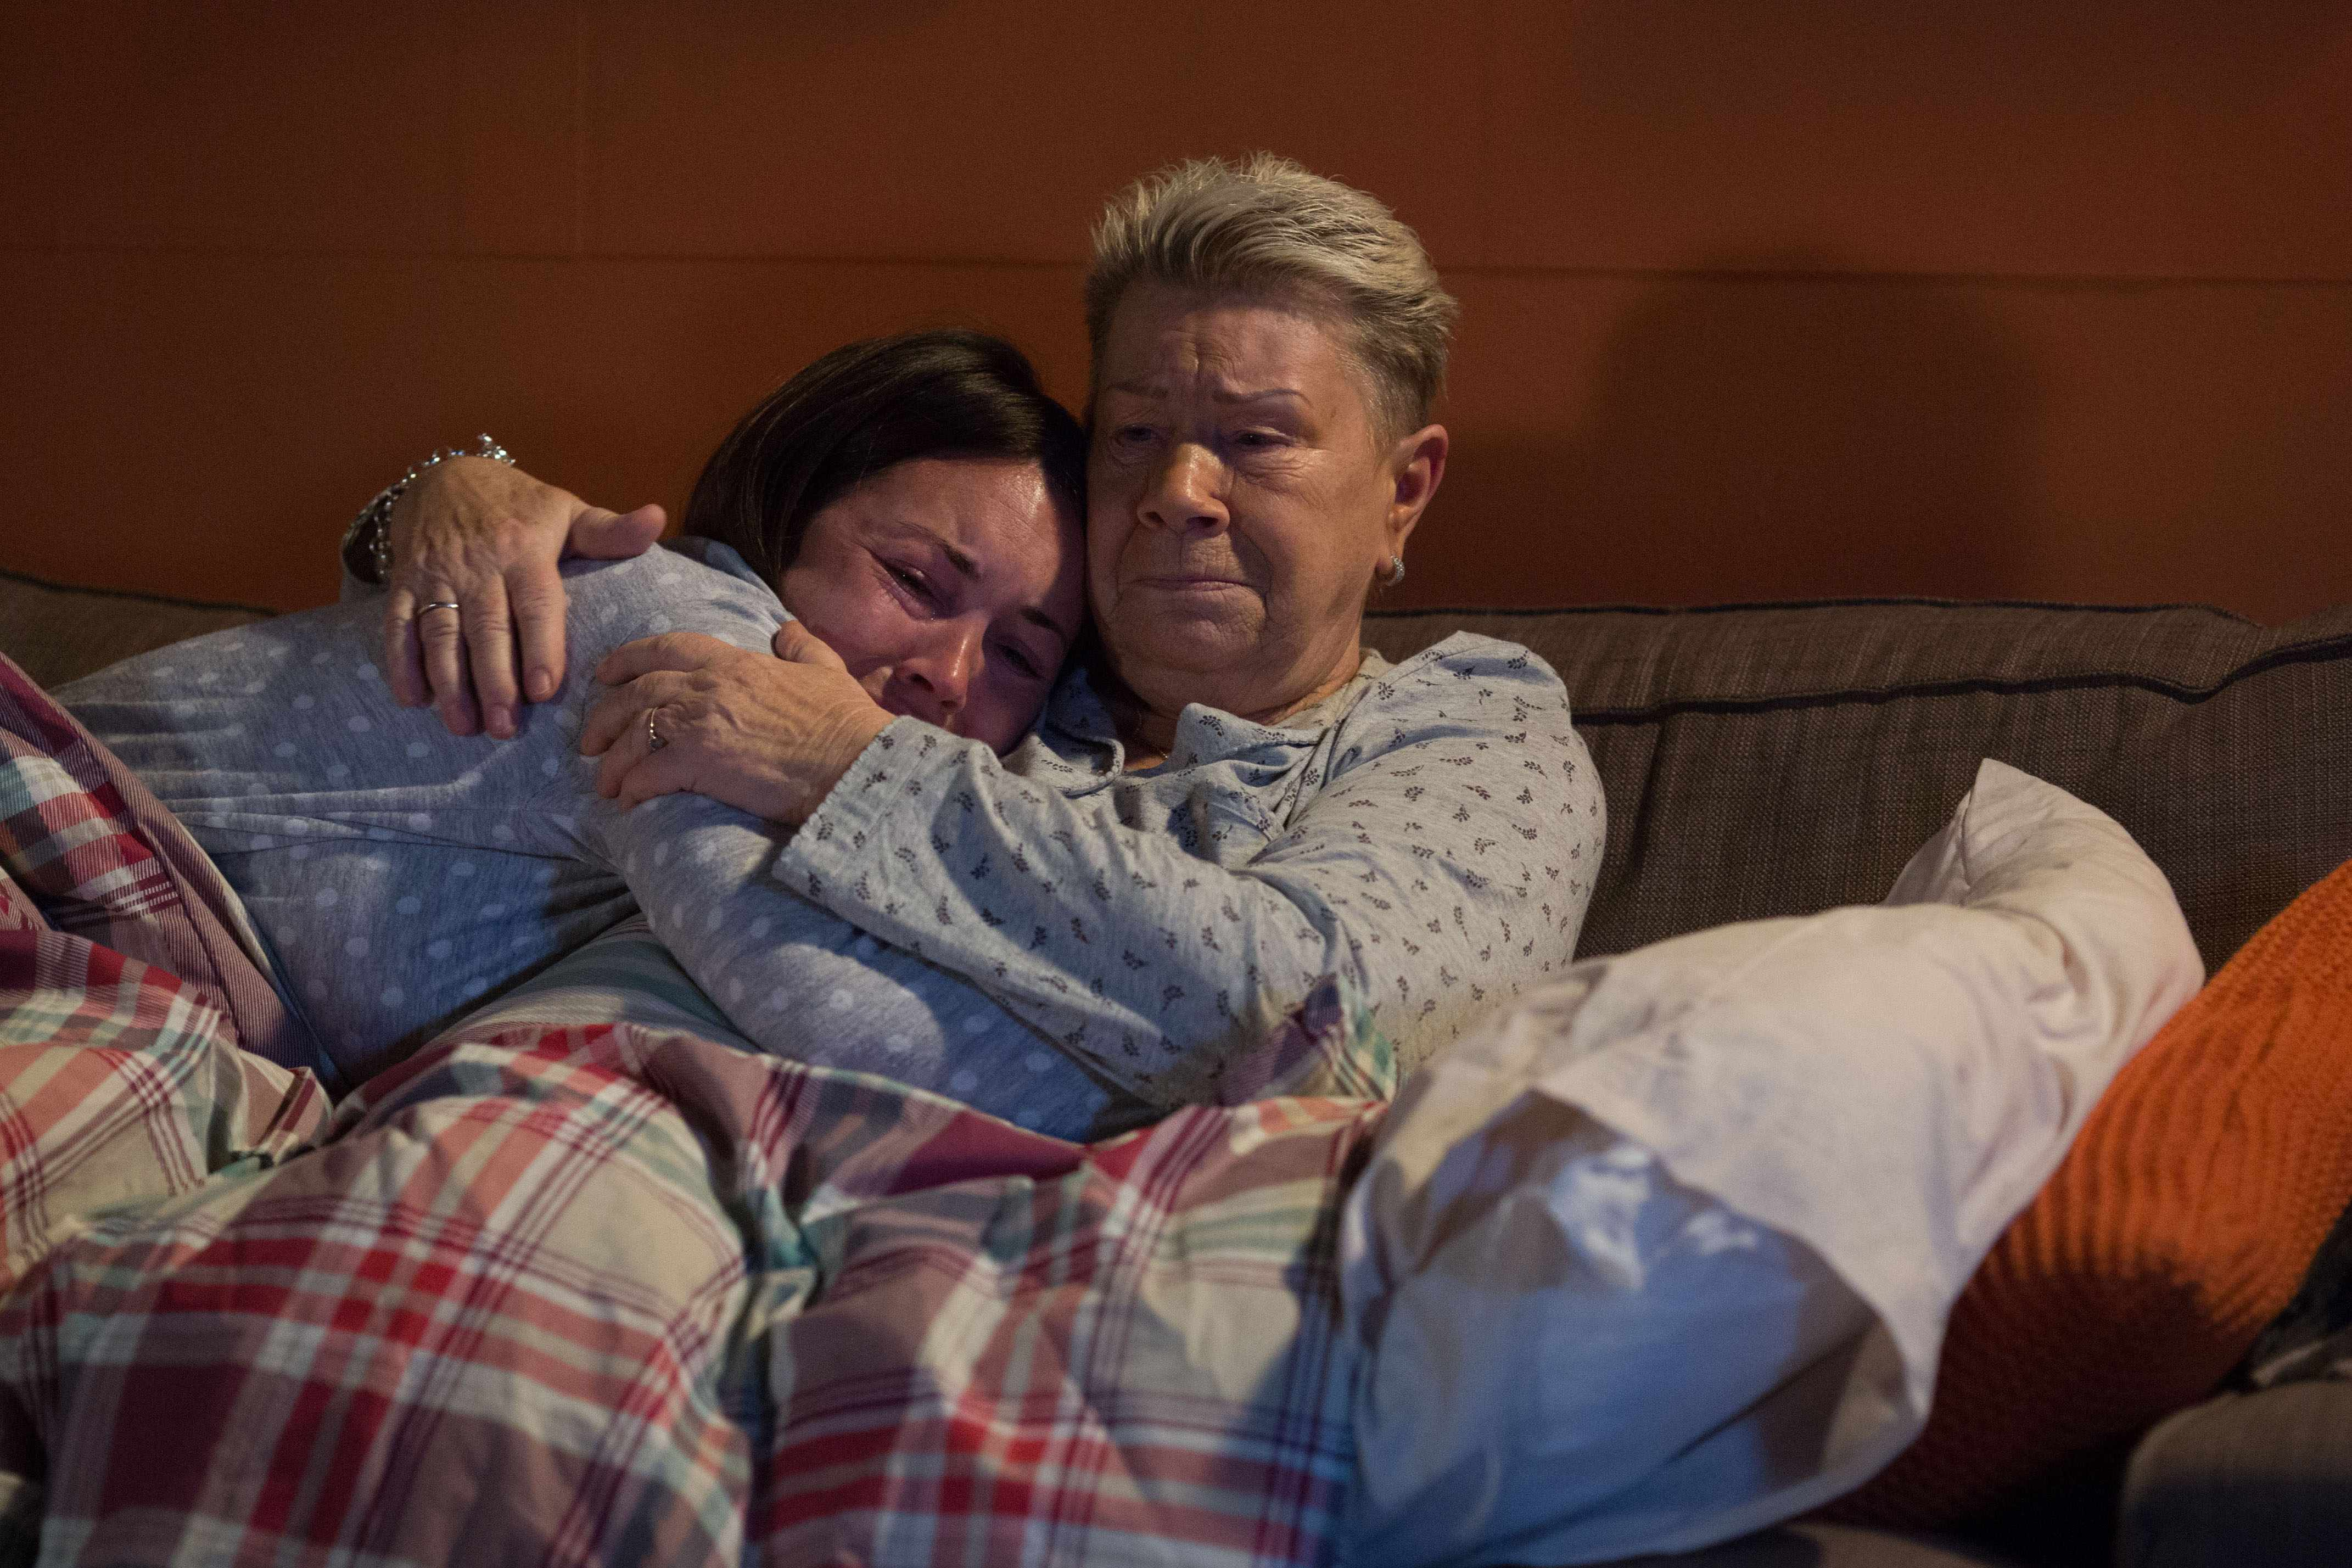 WARNING: Embargoed for publication until 00:00:01 on 13/03/2018 - Programme Name: EastEnders -January-April 2018 - TX: 19/03/2018 - Episode: EastEnders - January-April 2018 - 5674 (No. 5674) - Picture Shows: *STRICTLY NOT FOR PUBLICATION UNTIL 00:01HRS TUESDAY 13th MARCH 2018* Mo tells Stacey what happened.  Stacey Fowler (LACEY TURNER), Mo Harris (LAILA MORSE) - (C) BBC - Photographer: Jack Barnes